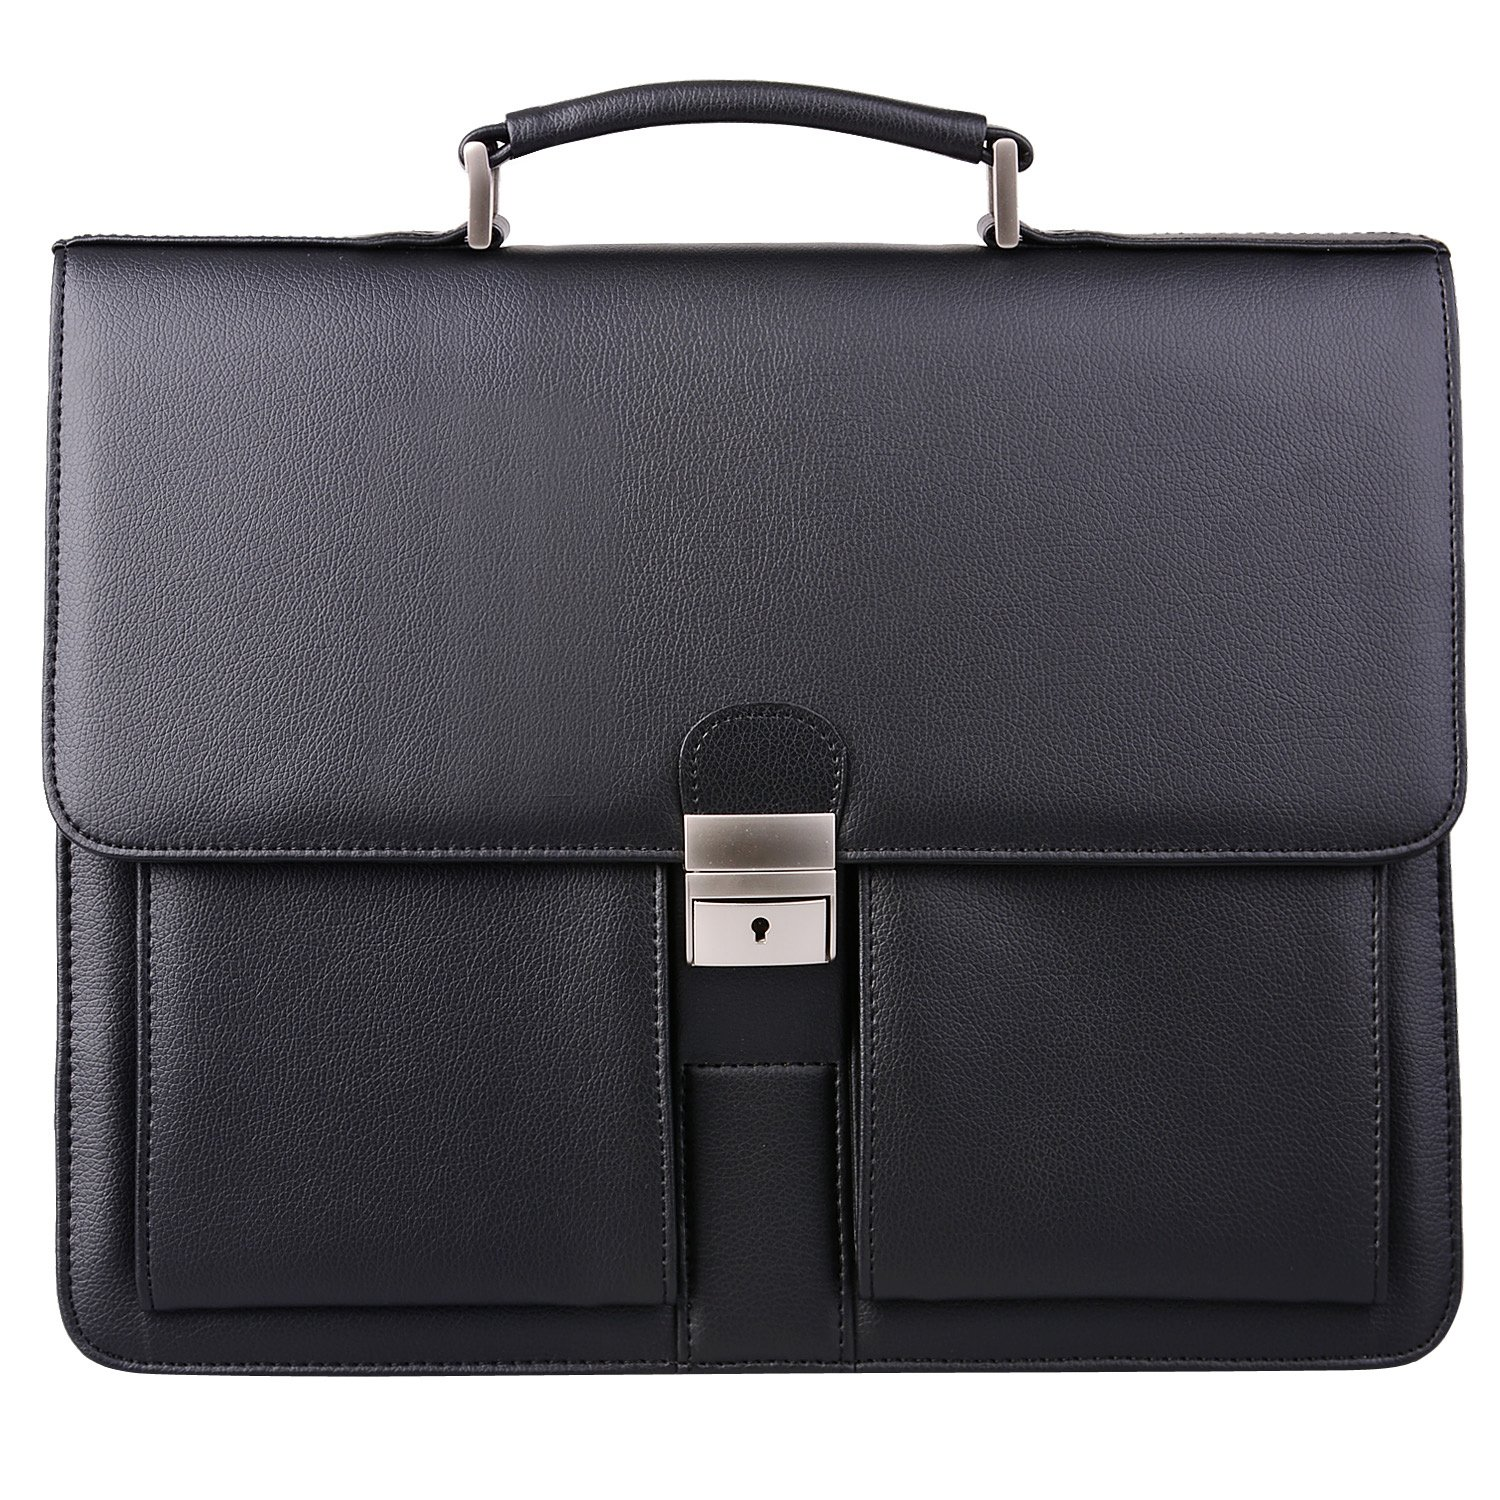 Jack&Chris Mens New PU Leather Briefcase Messenger Bag Laptop Bag, MBYX015 (Black)